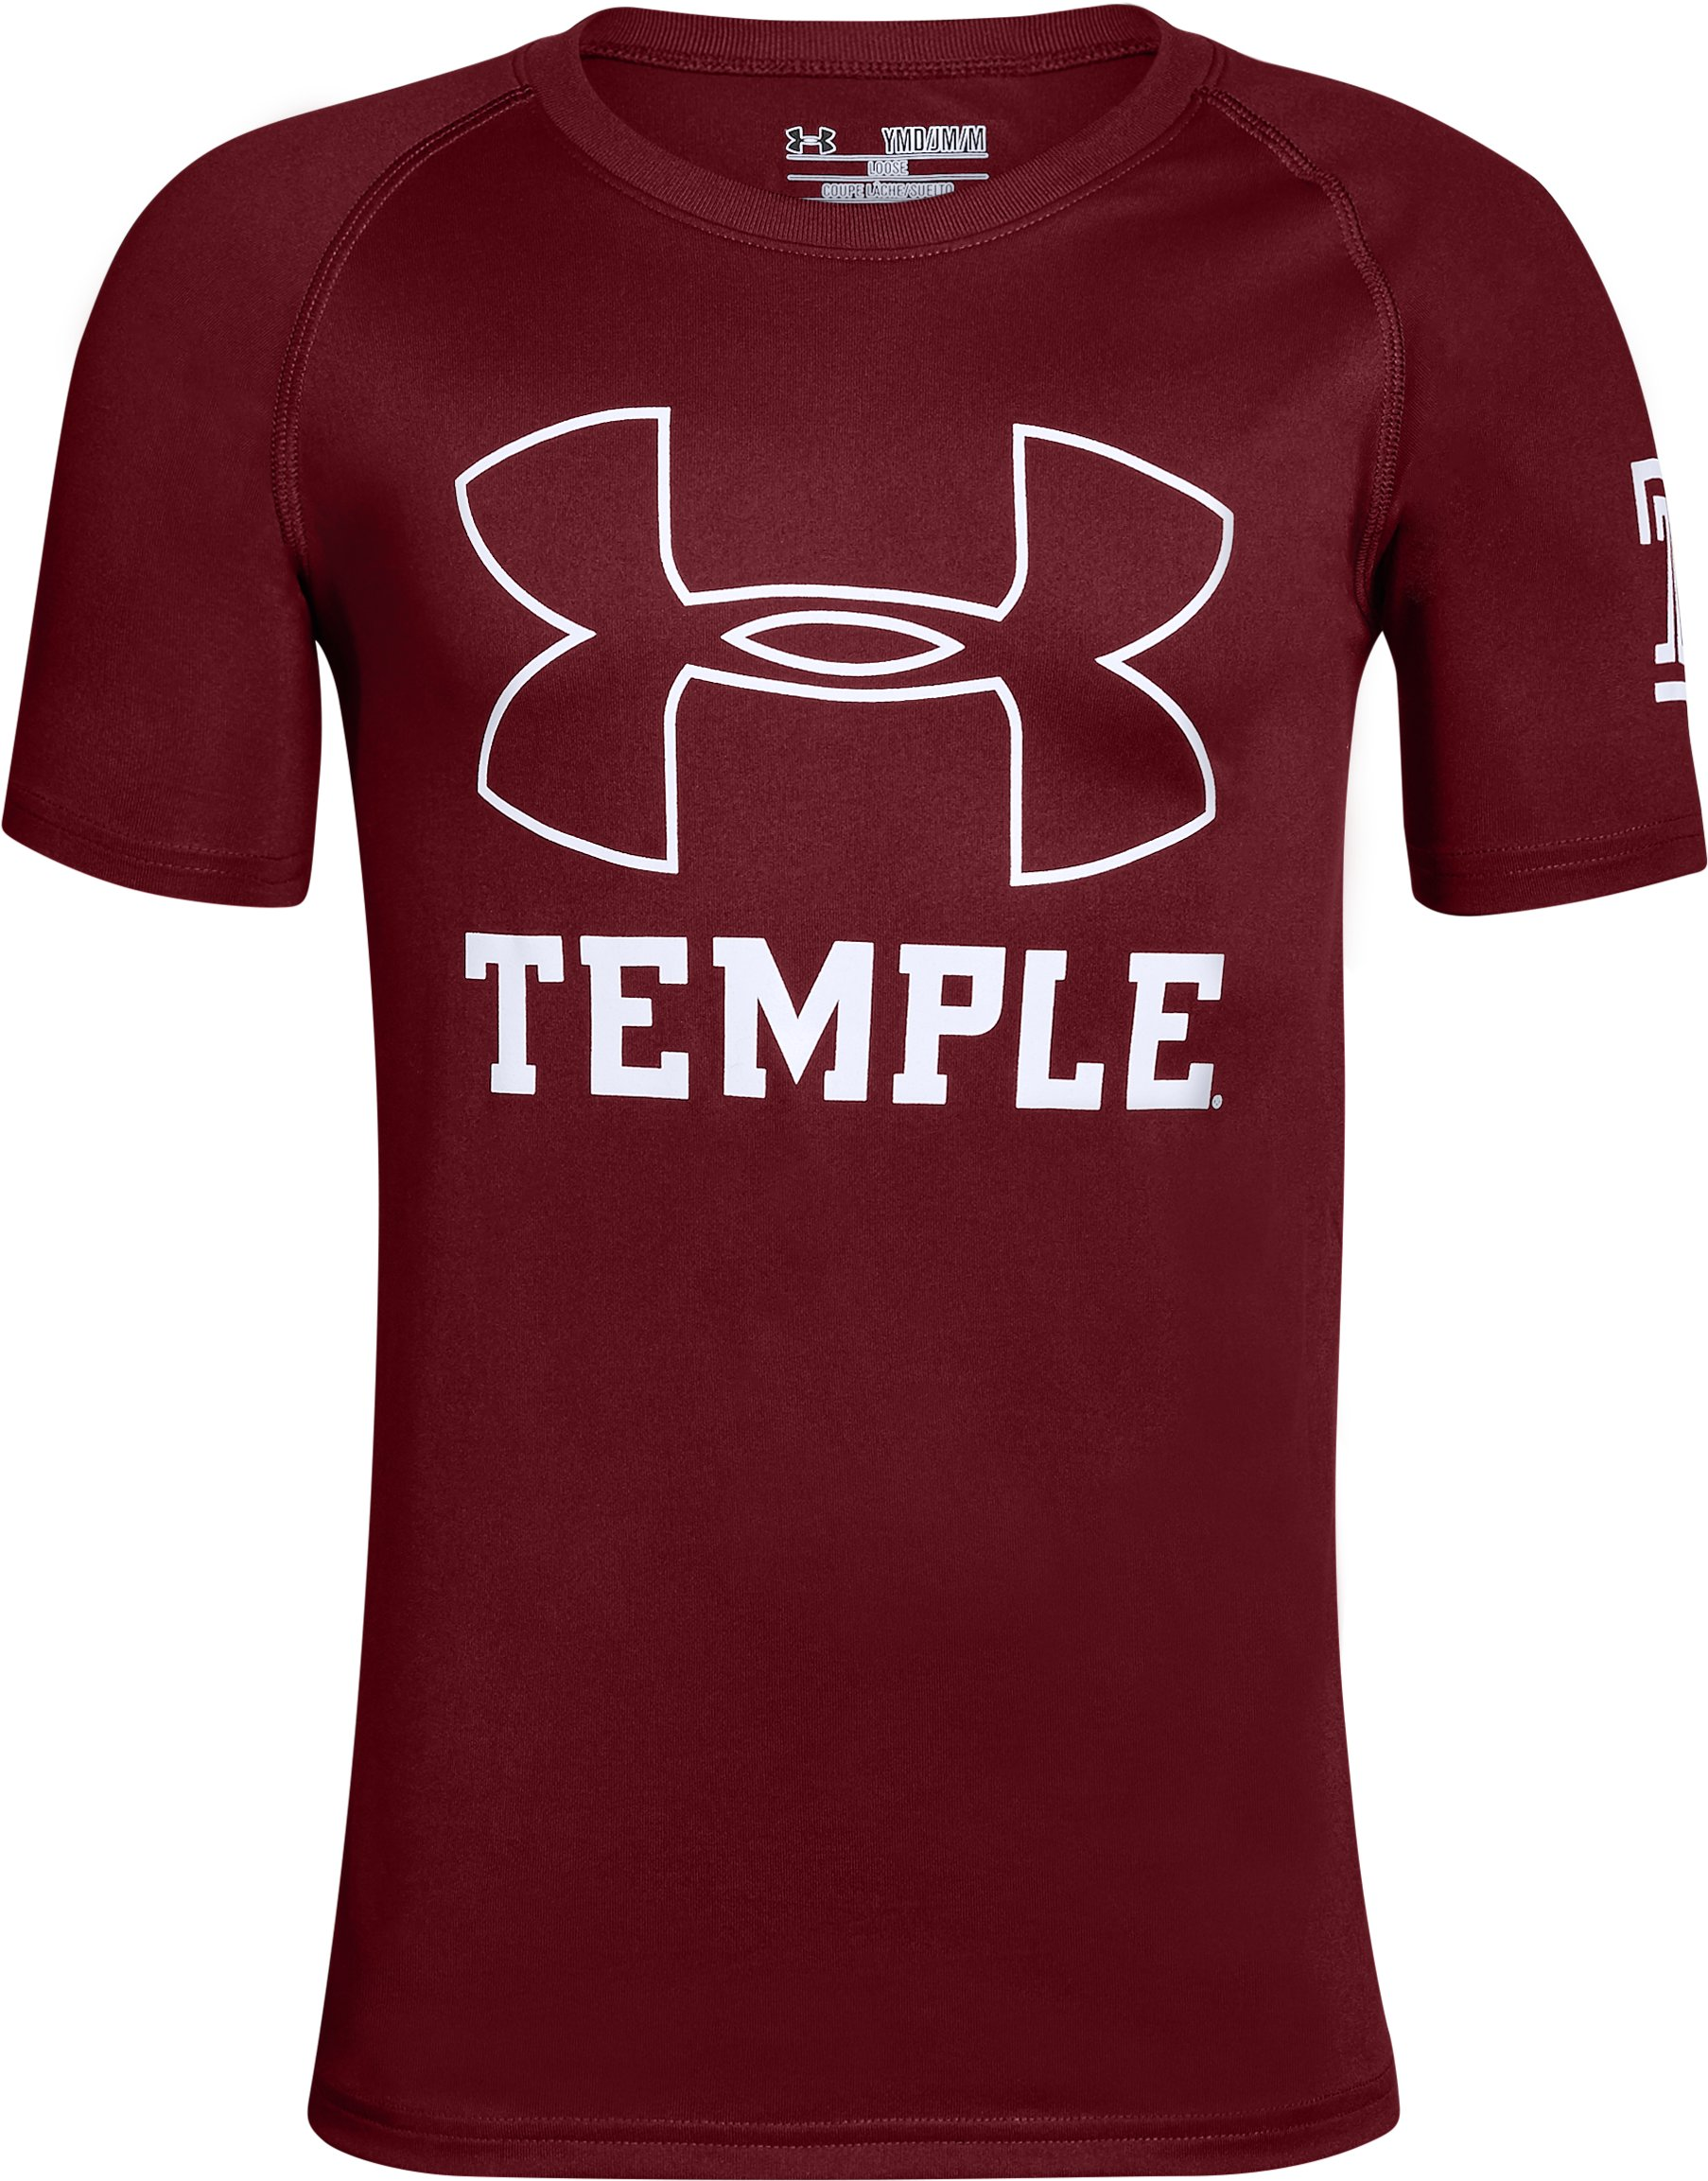 Boys' Temple Charged Cotton® T-Shirt, Cardinal,